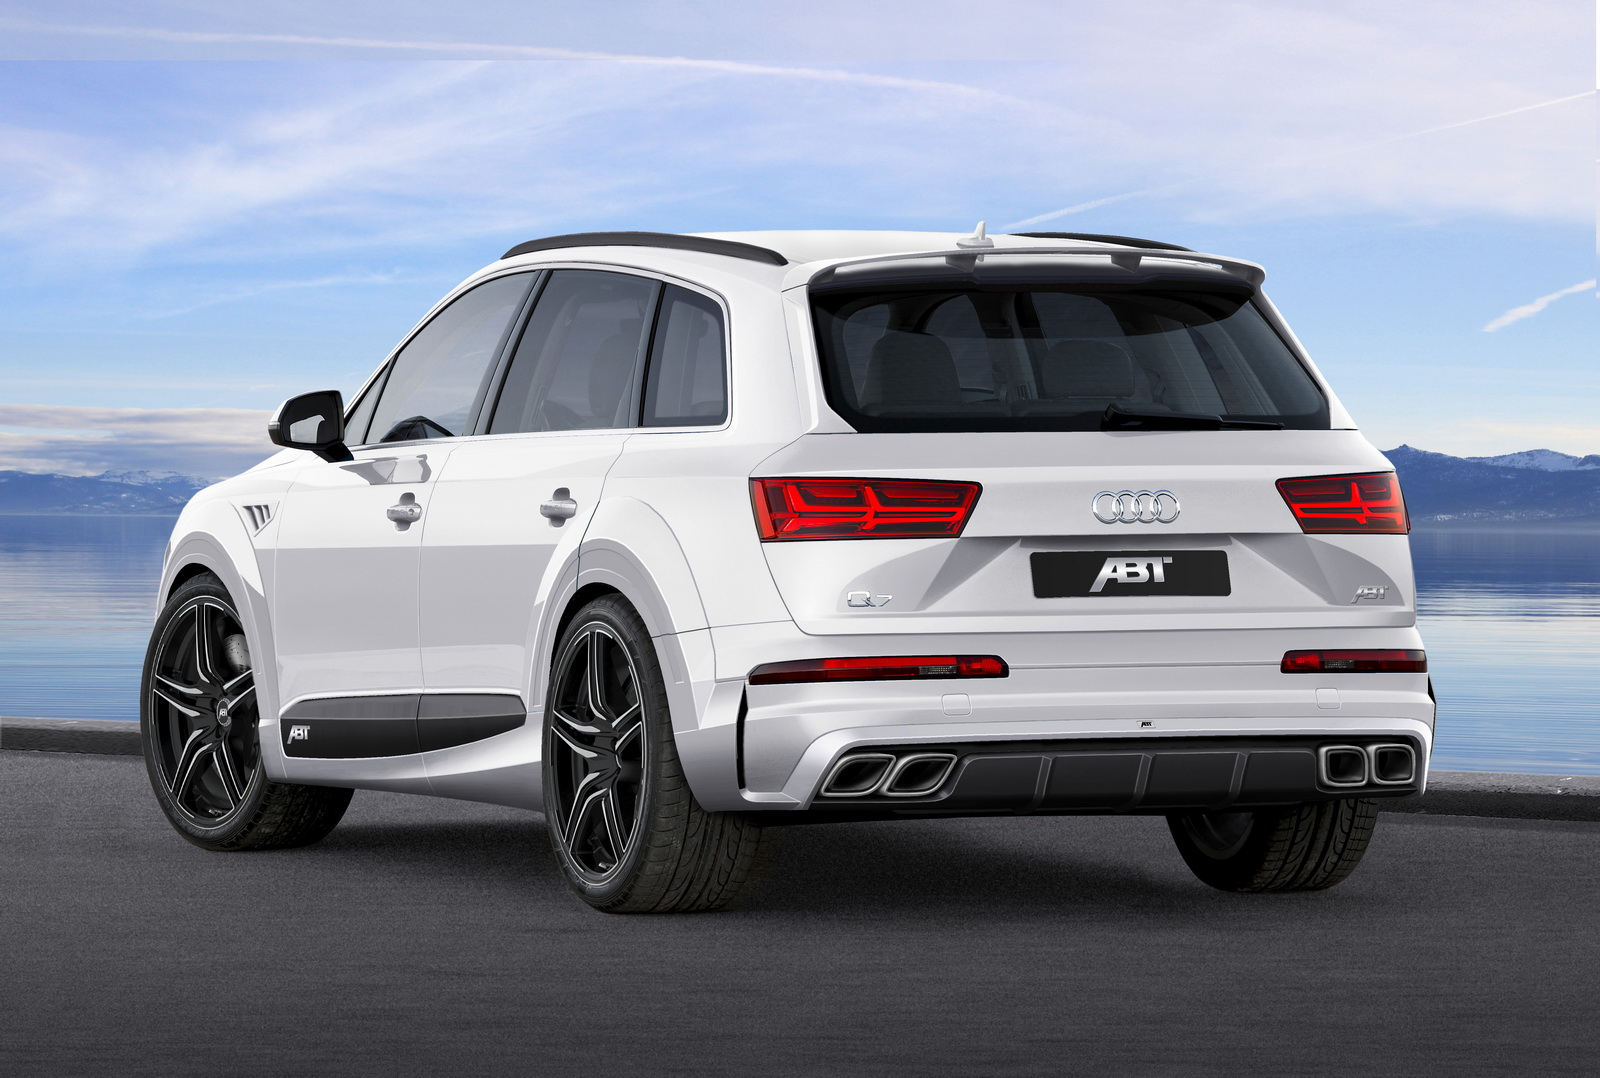 Abt Dresses Audi Q7 In Sportier Clothes Calls It The Qs7